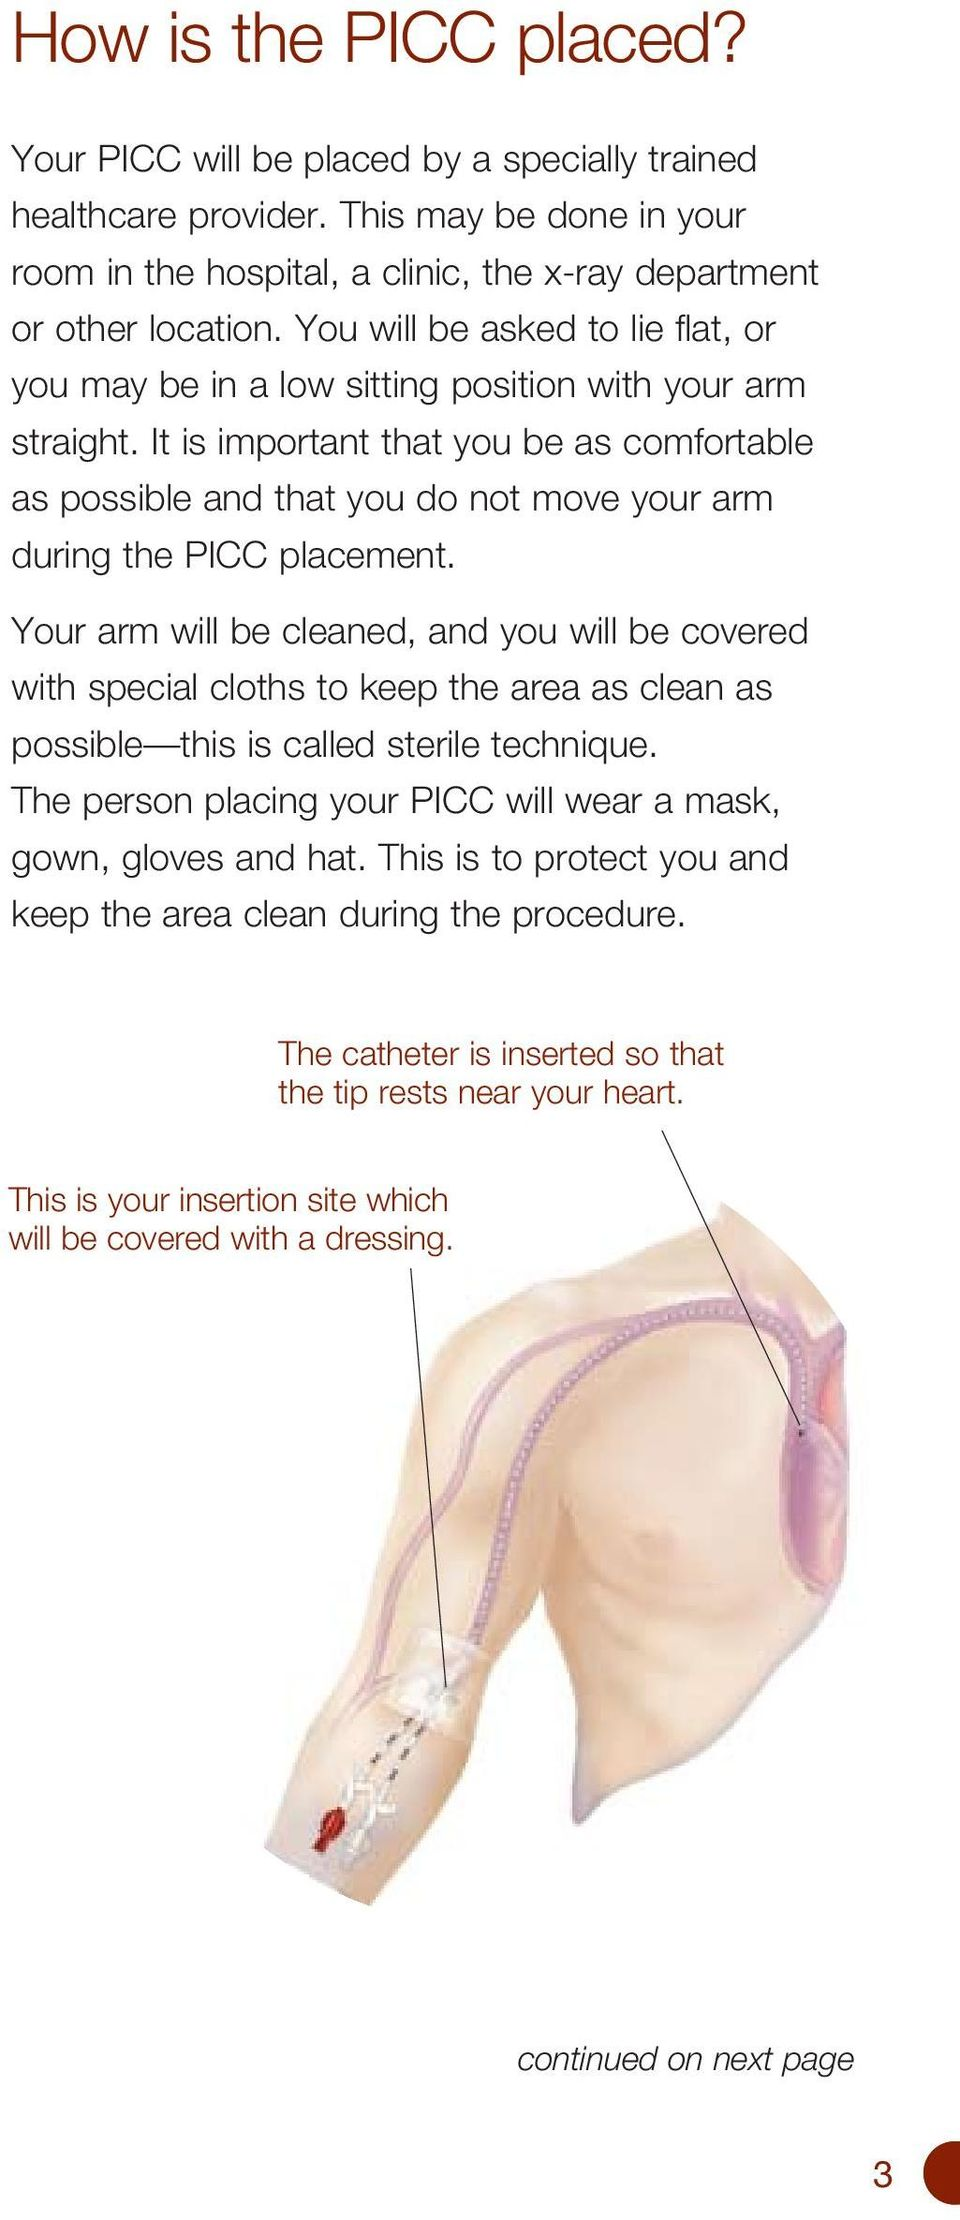 It is important that you be as comfortable as possible and that you do not move your arm during the PICC placement.